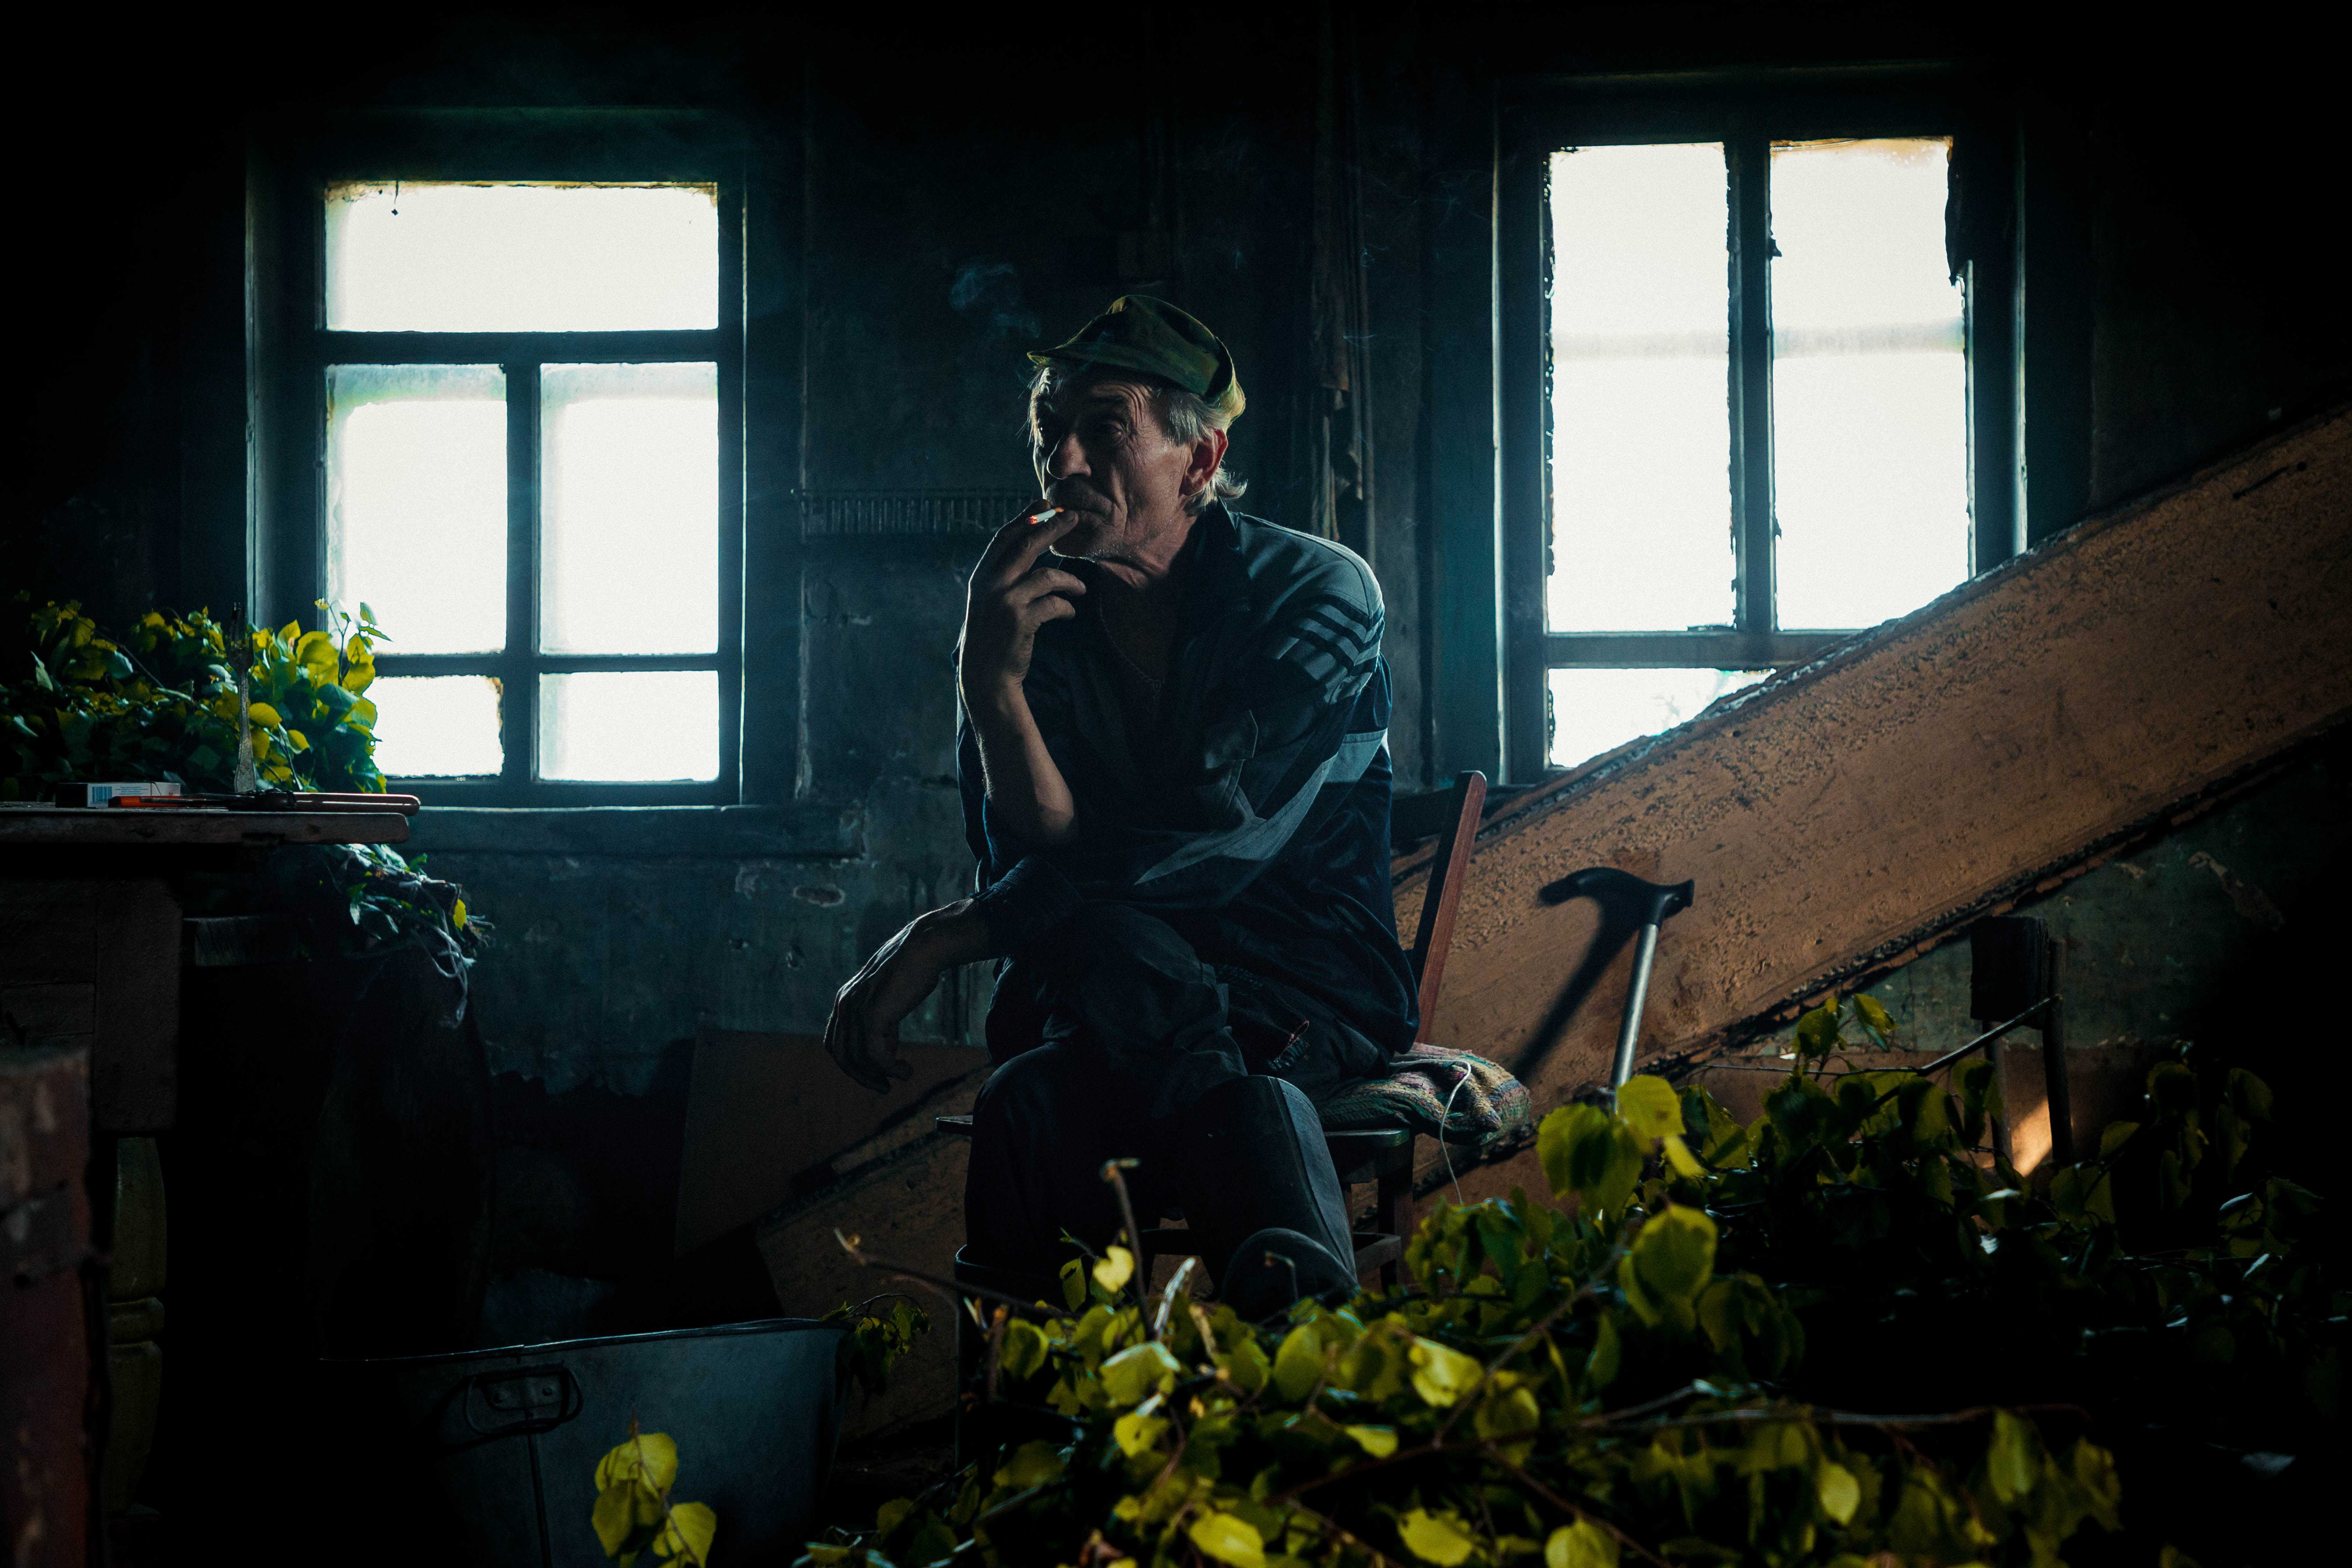 Older man sitting by the window in a dimly lit room smoking a cigarette in Knyazeva, Russia.